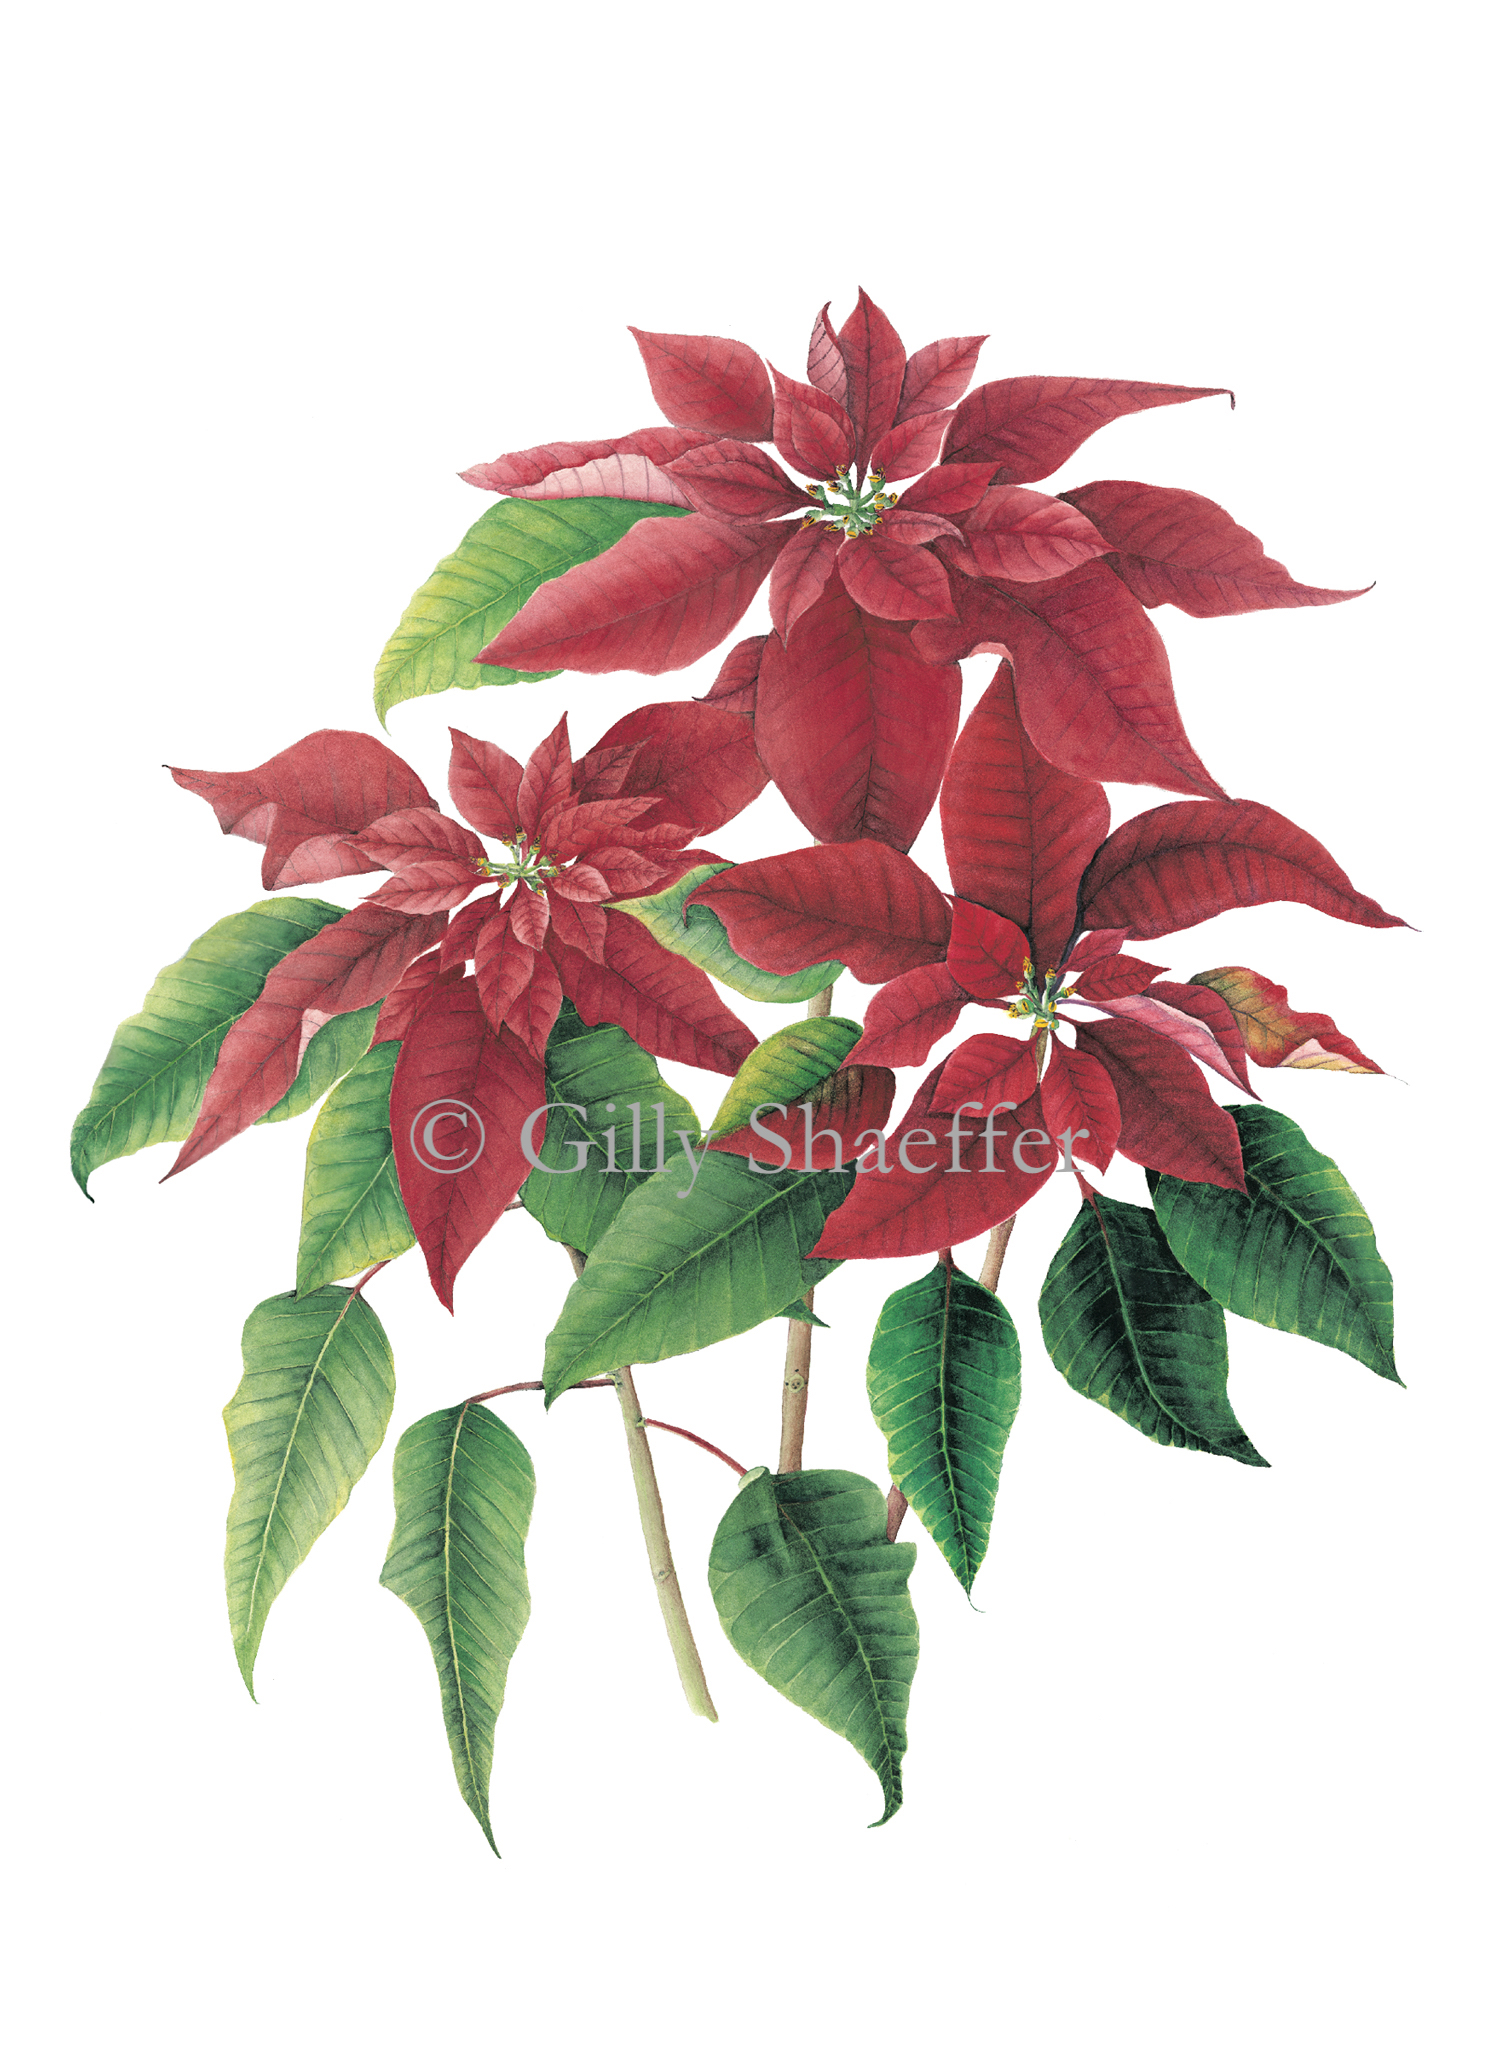 Poinsettia copy.jpg